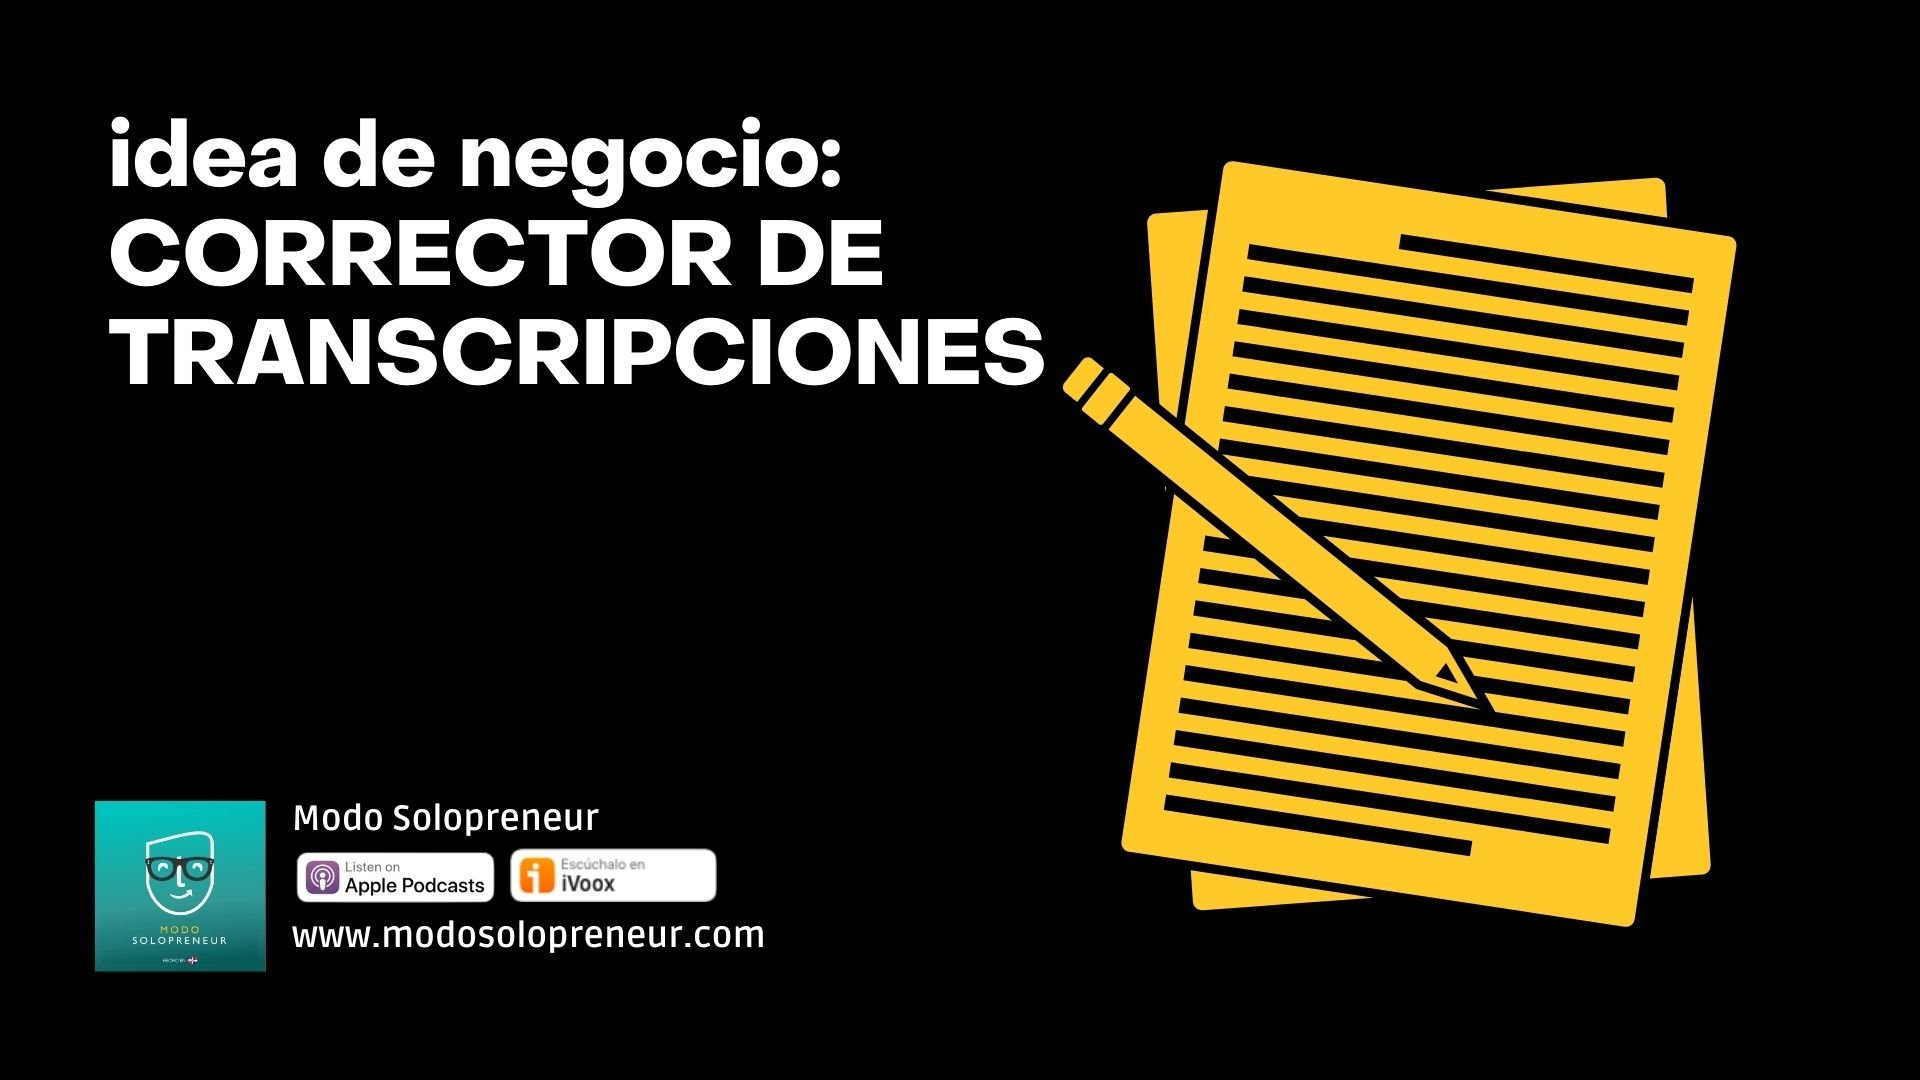 Idea de negocio: corrector de transcripciones de podcast